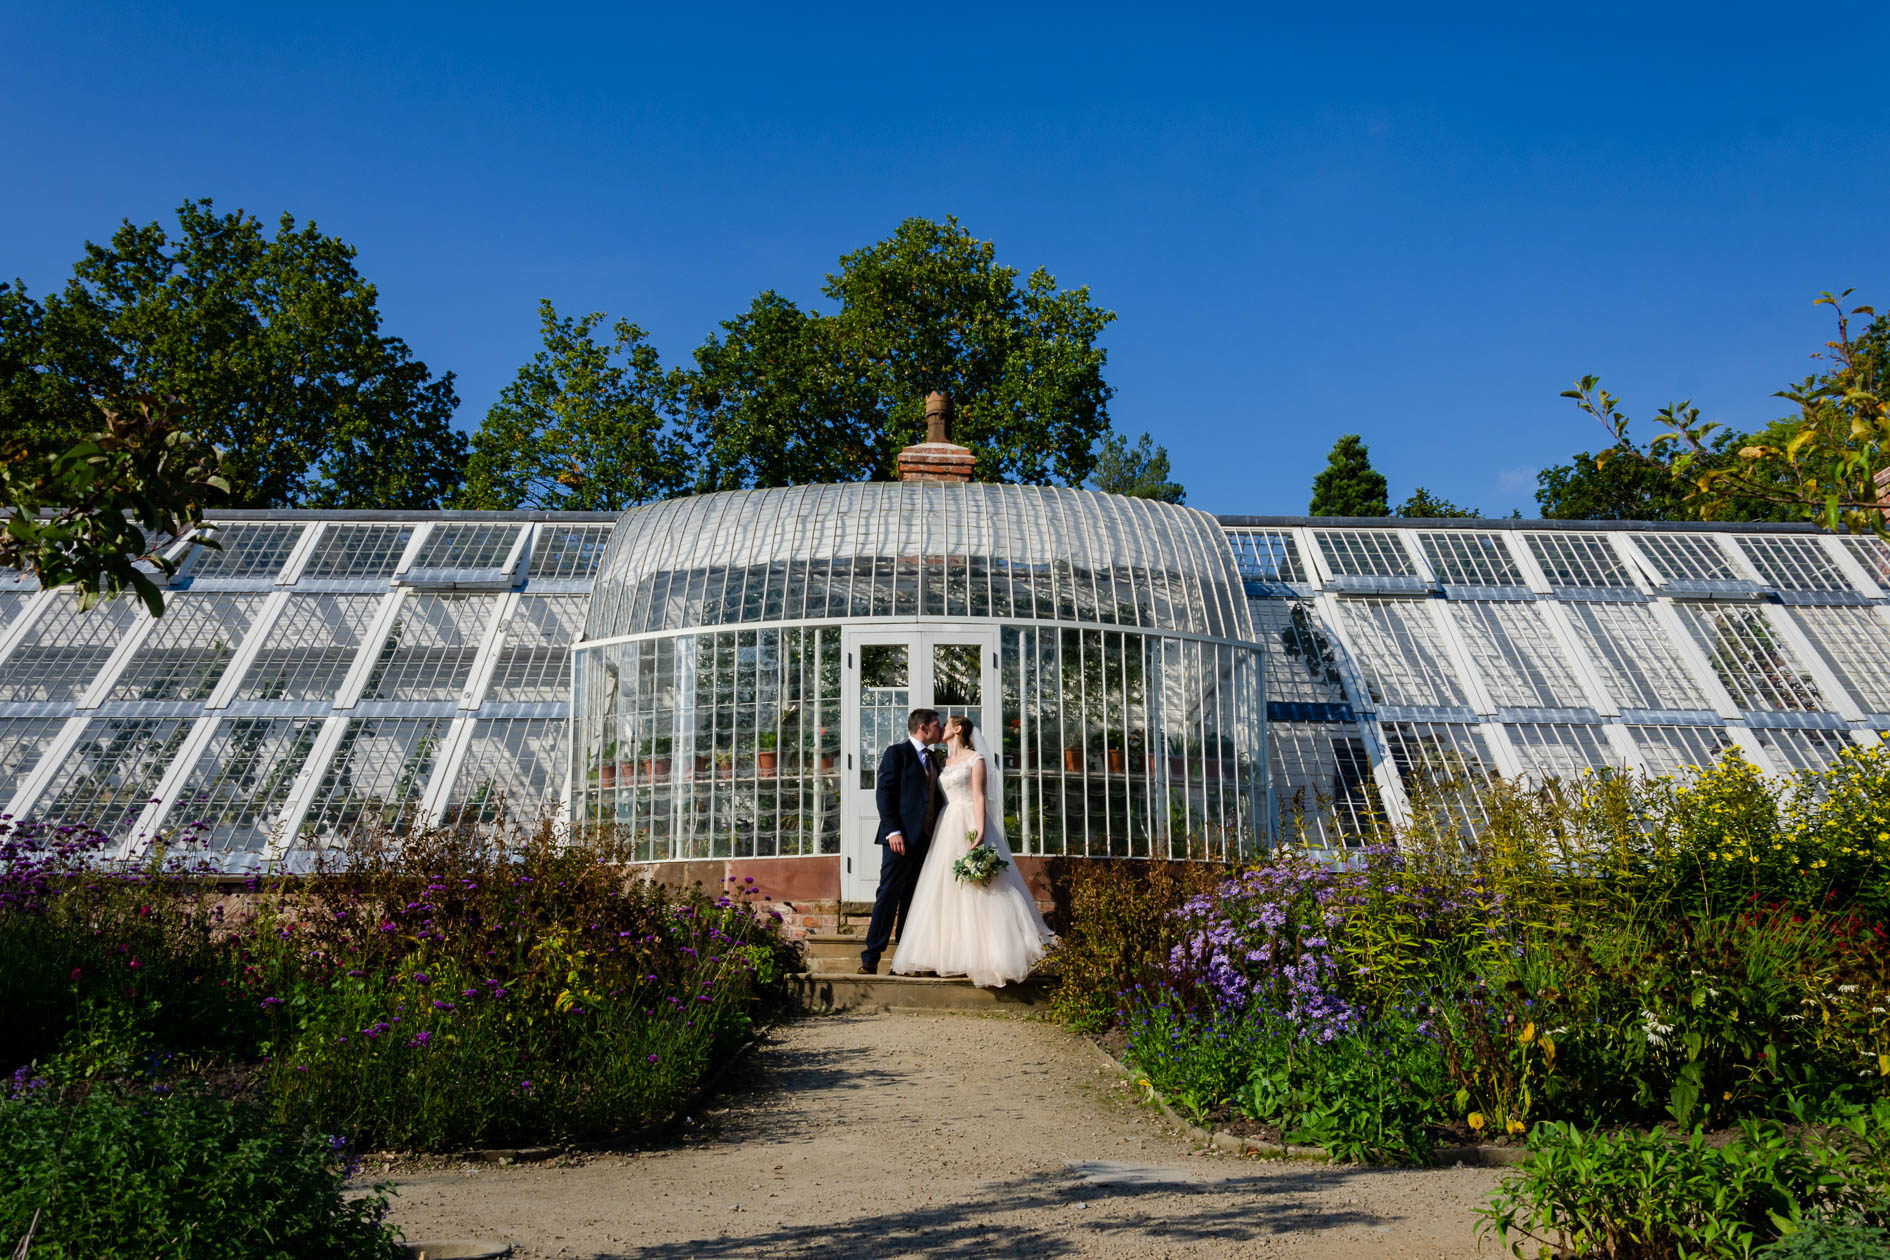 Quarry bank mill Bride & Groom kiss in front of glass house in sunshine with blue sky